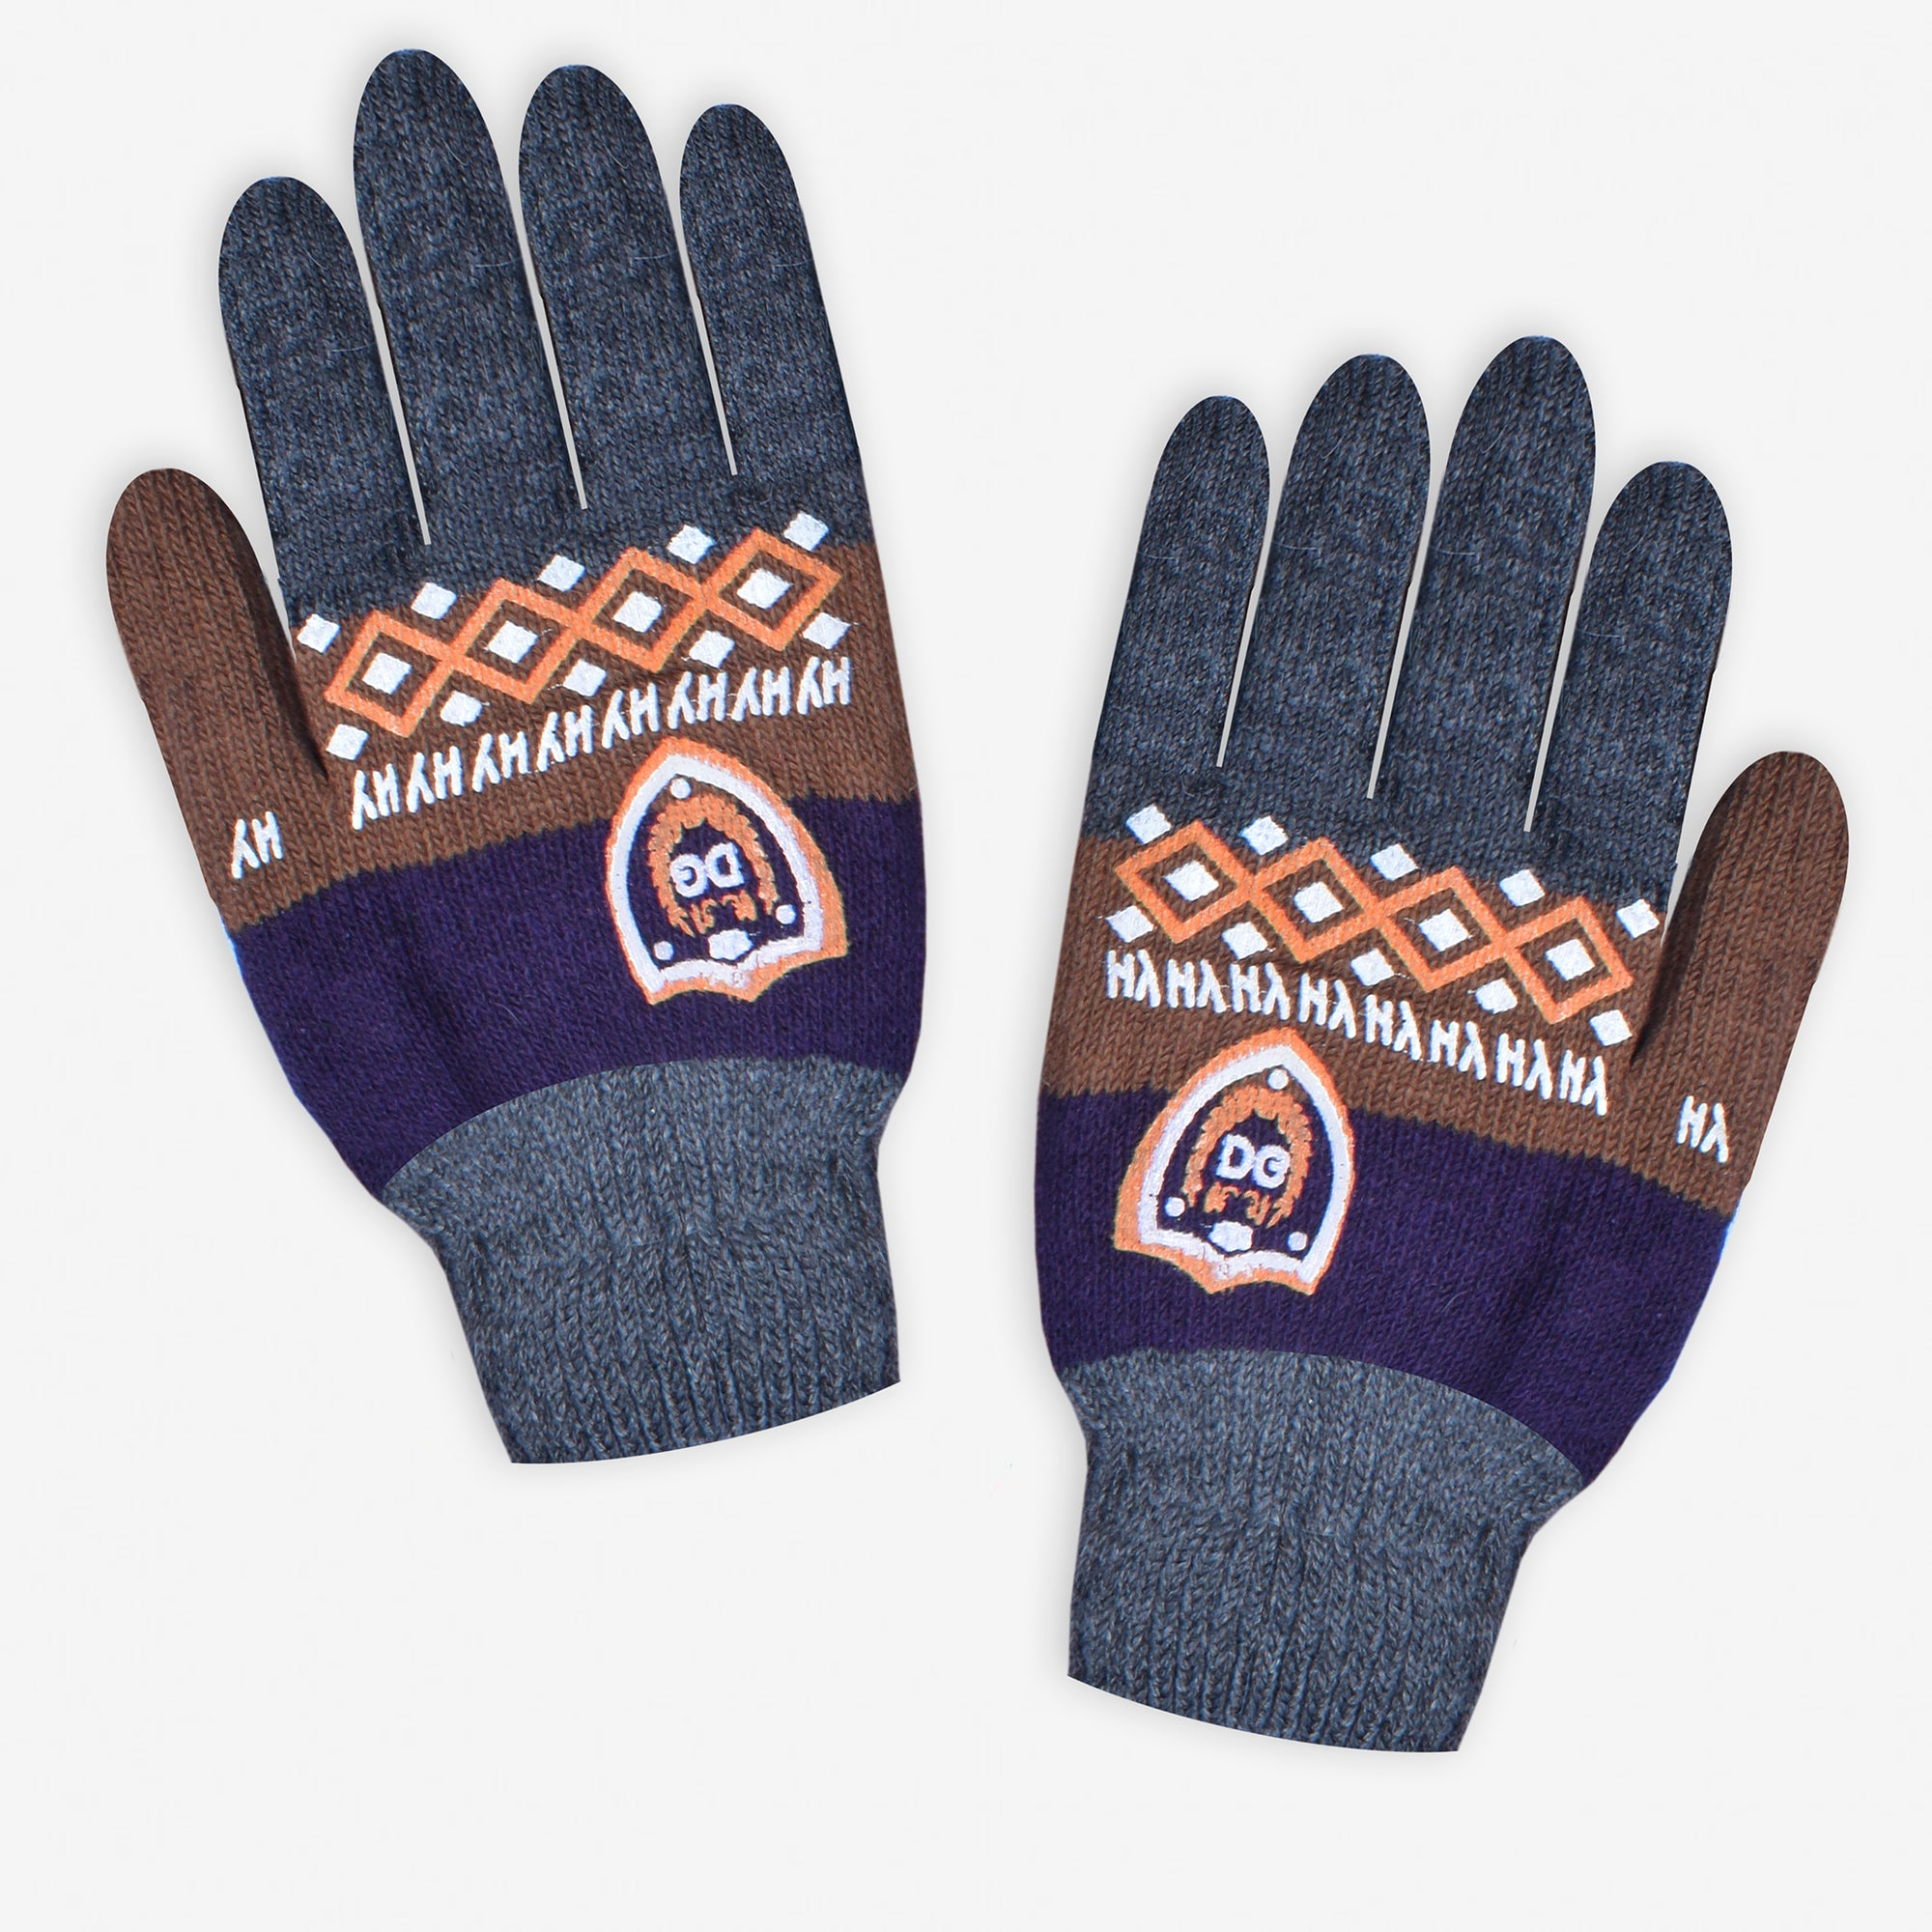 DG Knitted Wool Free Size Gloves For Men-Assorted-NA10253